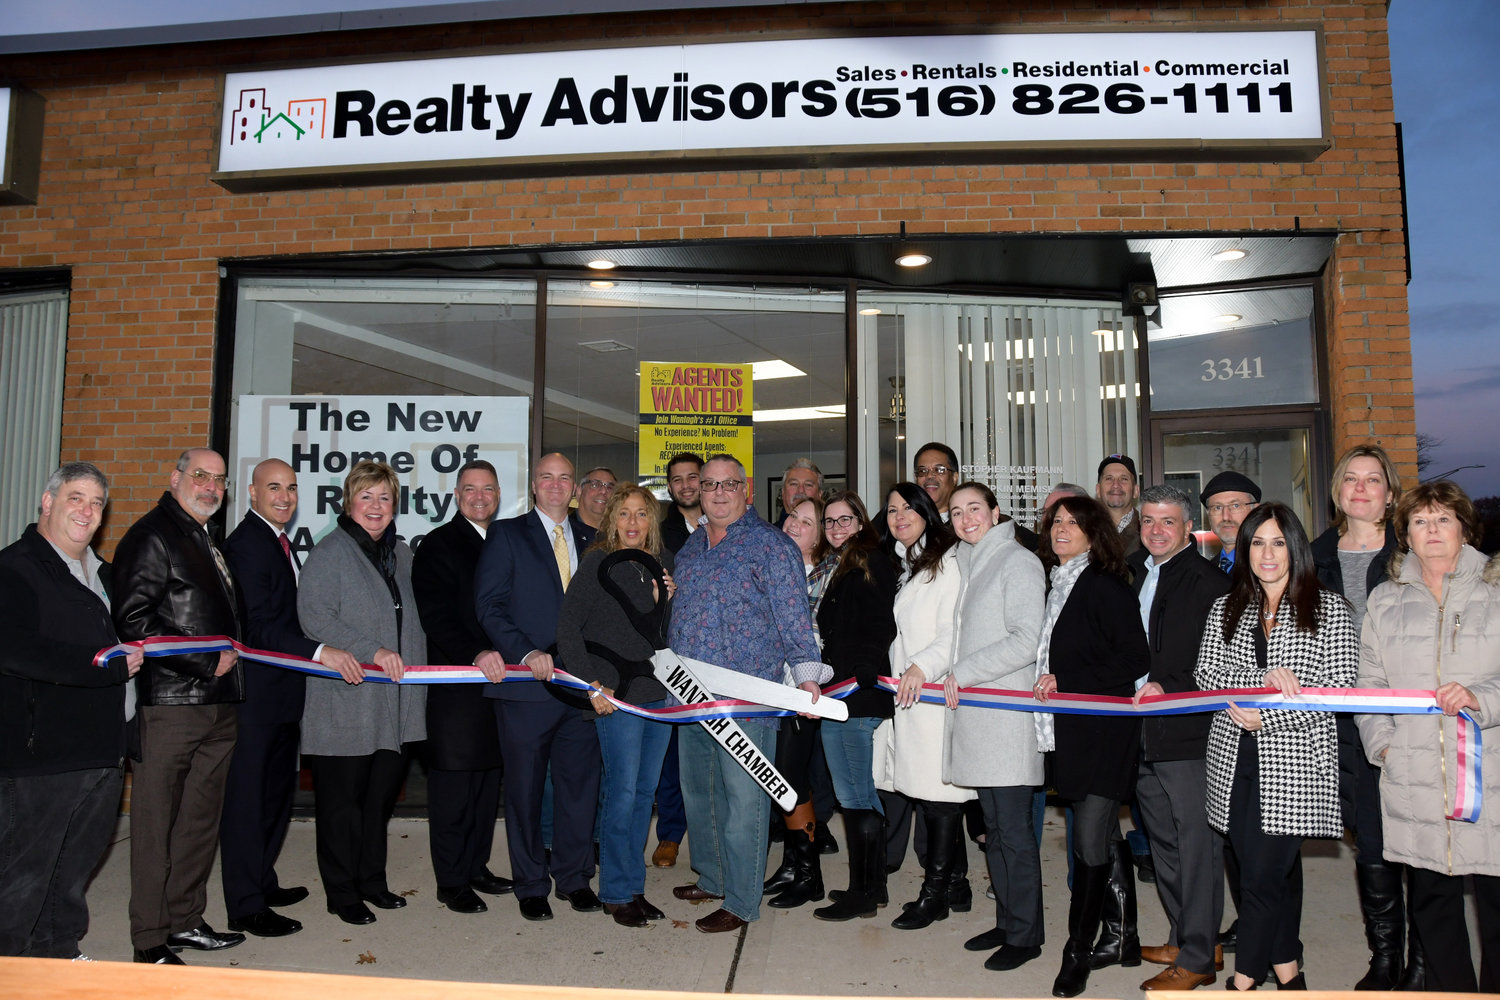 On Wednesday, Nov. 20, Realty Advsors celebrated their move from the Cherrywood Shopping Center to Park Avenue.